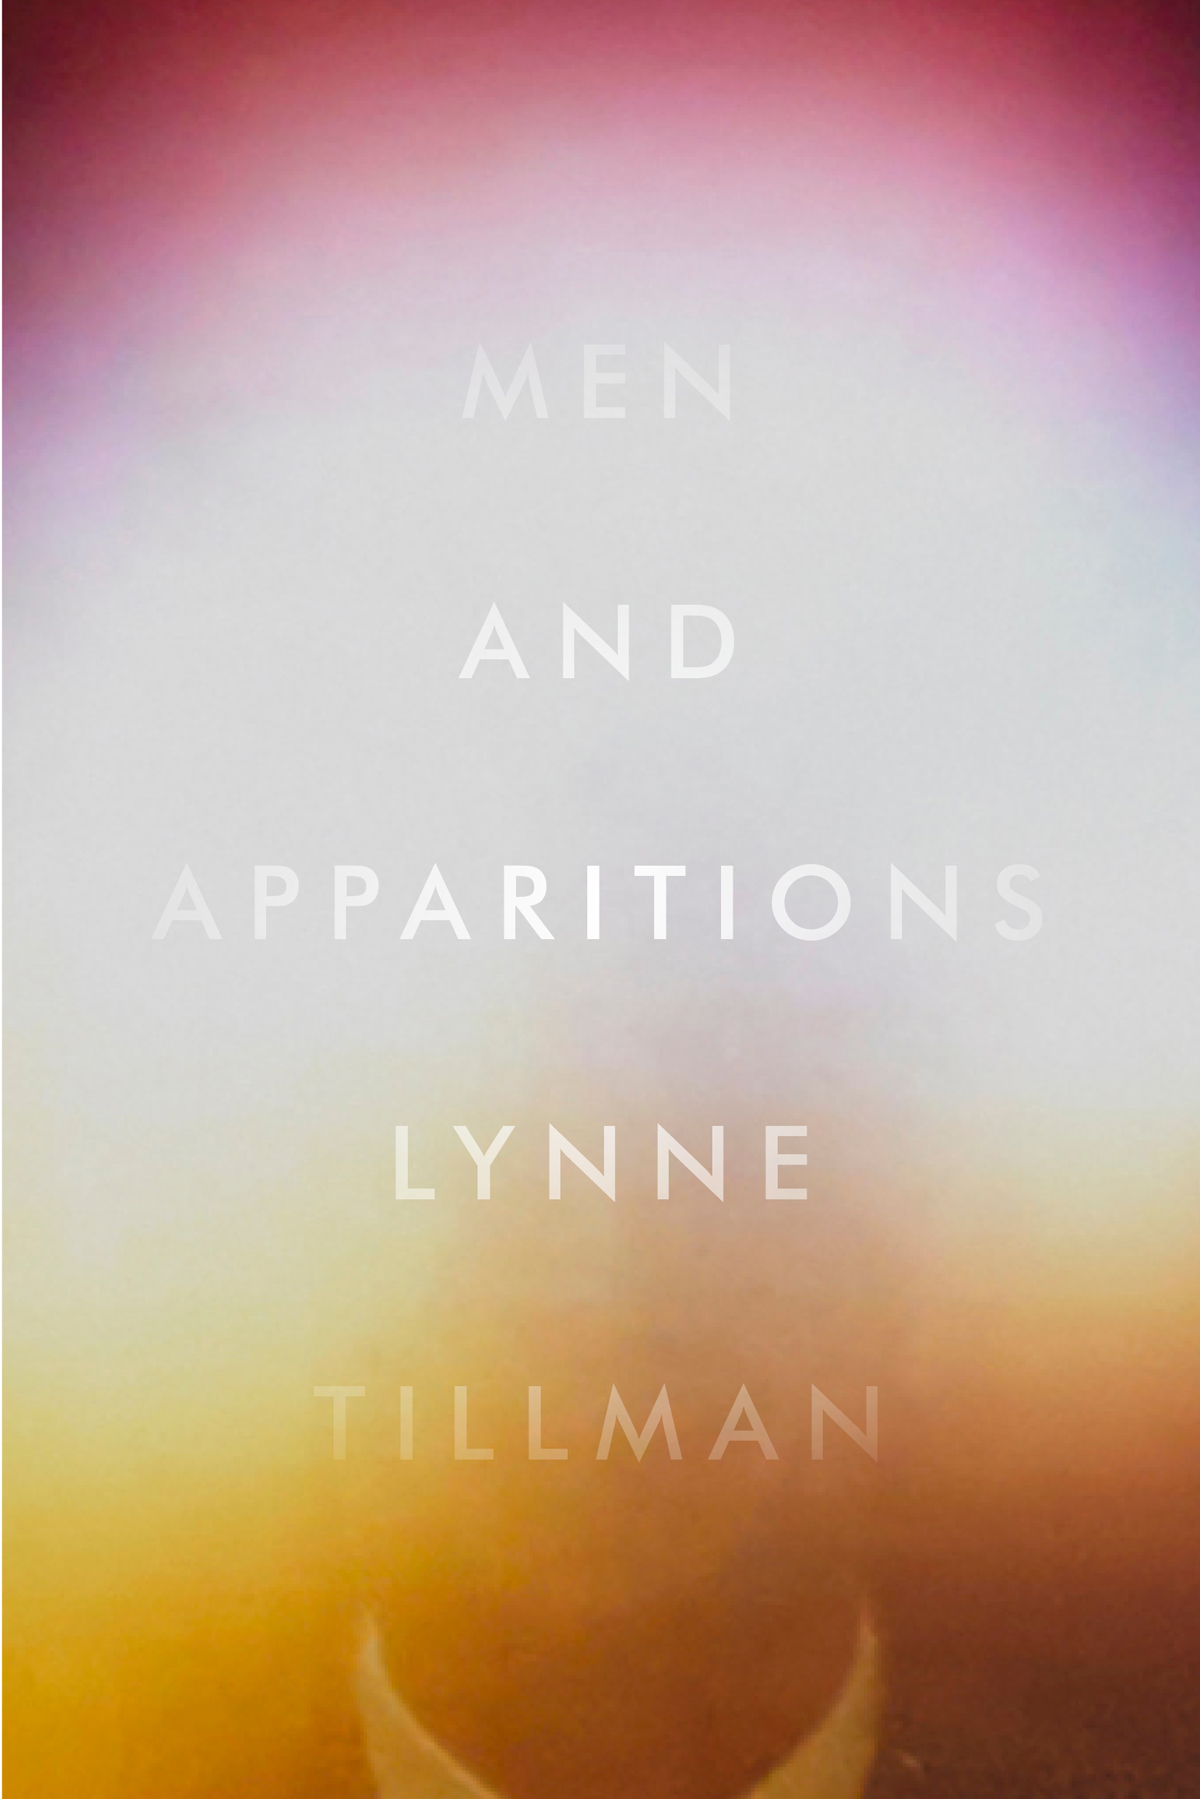 Tillman, Lynne MEN AND APPARITIONS.jpg